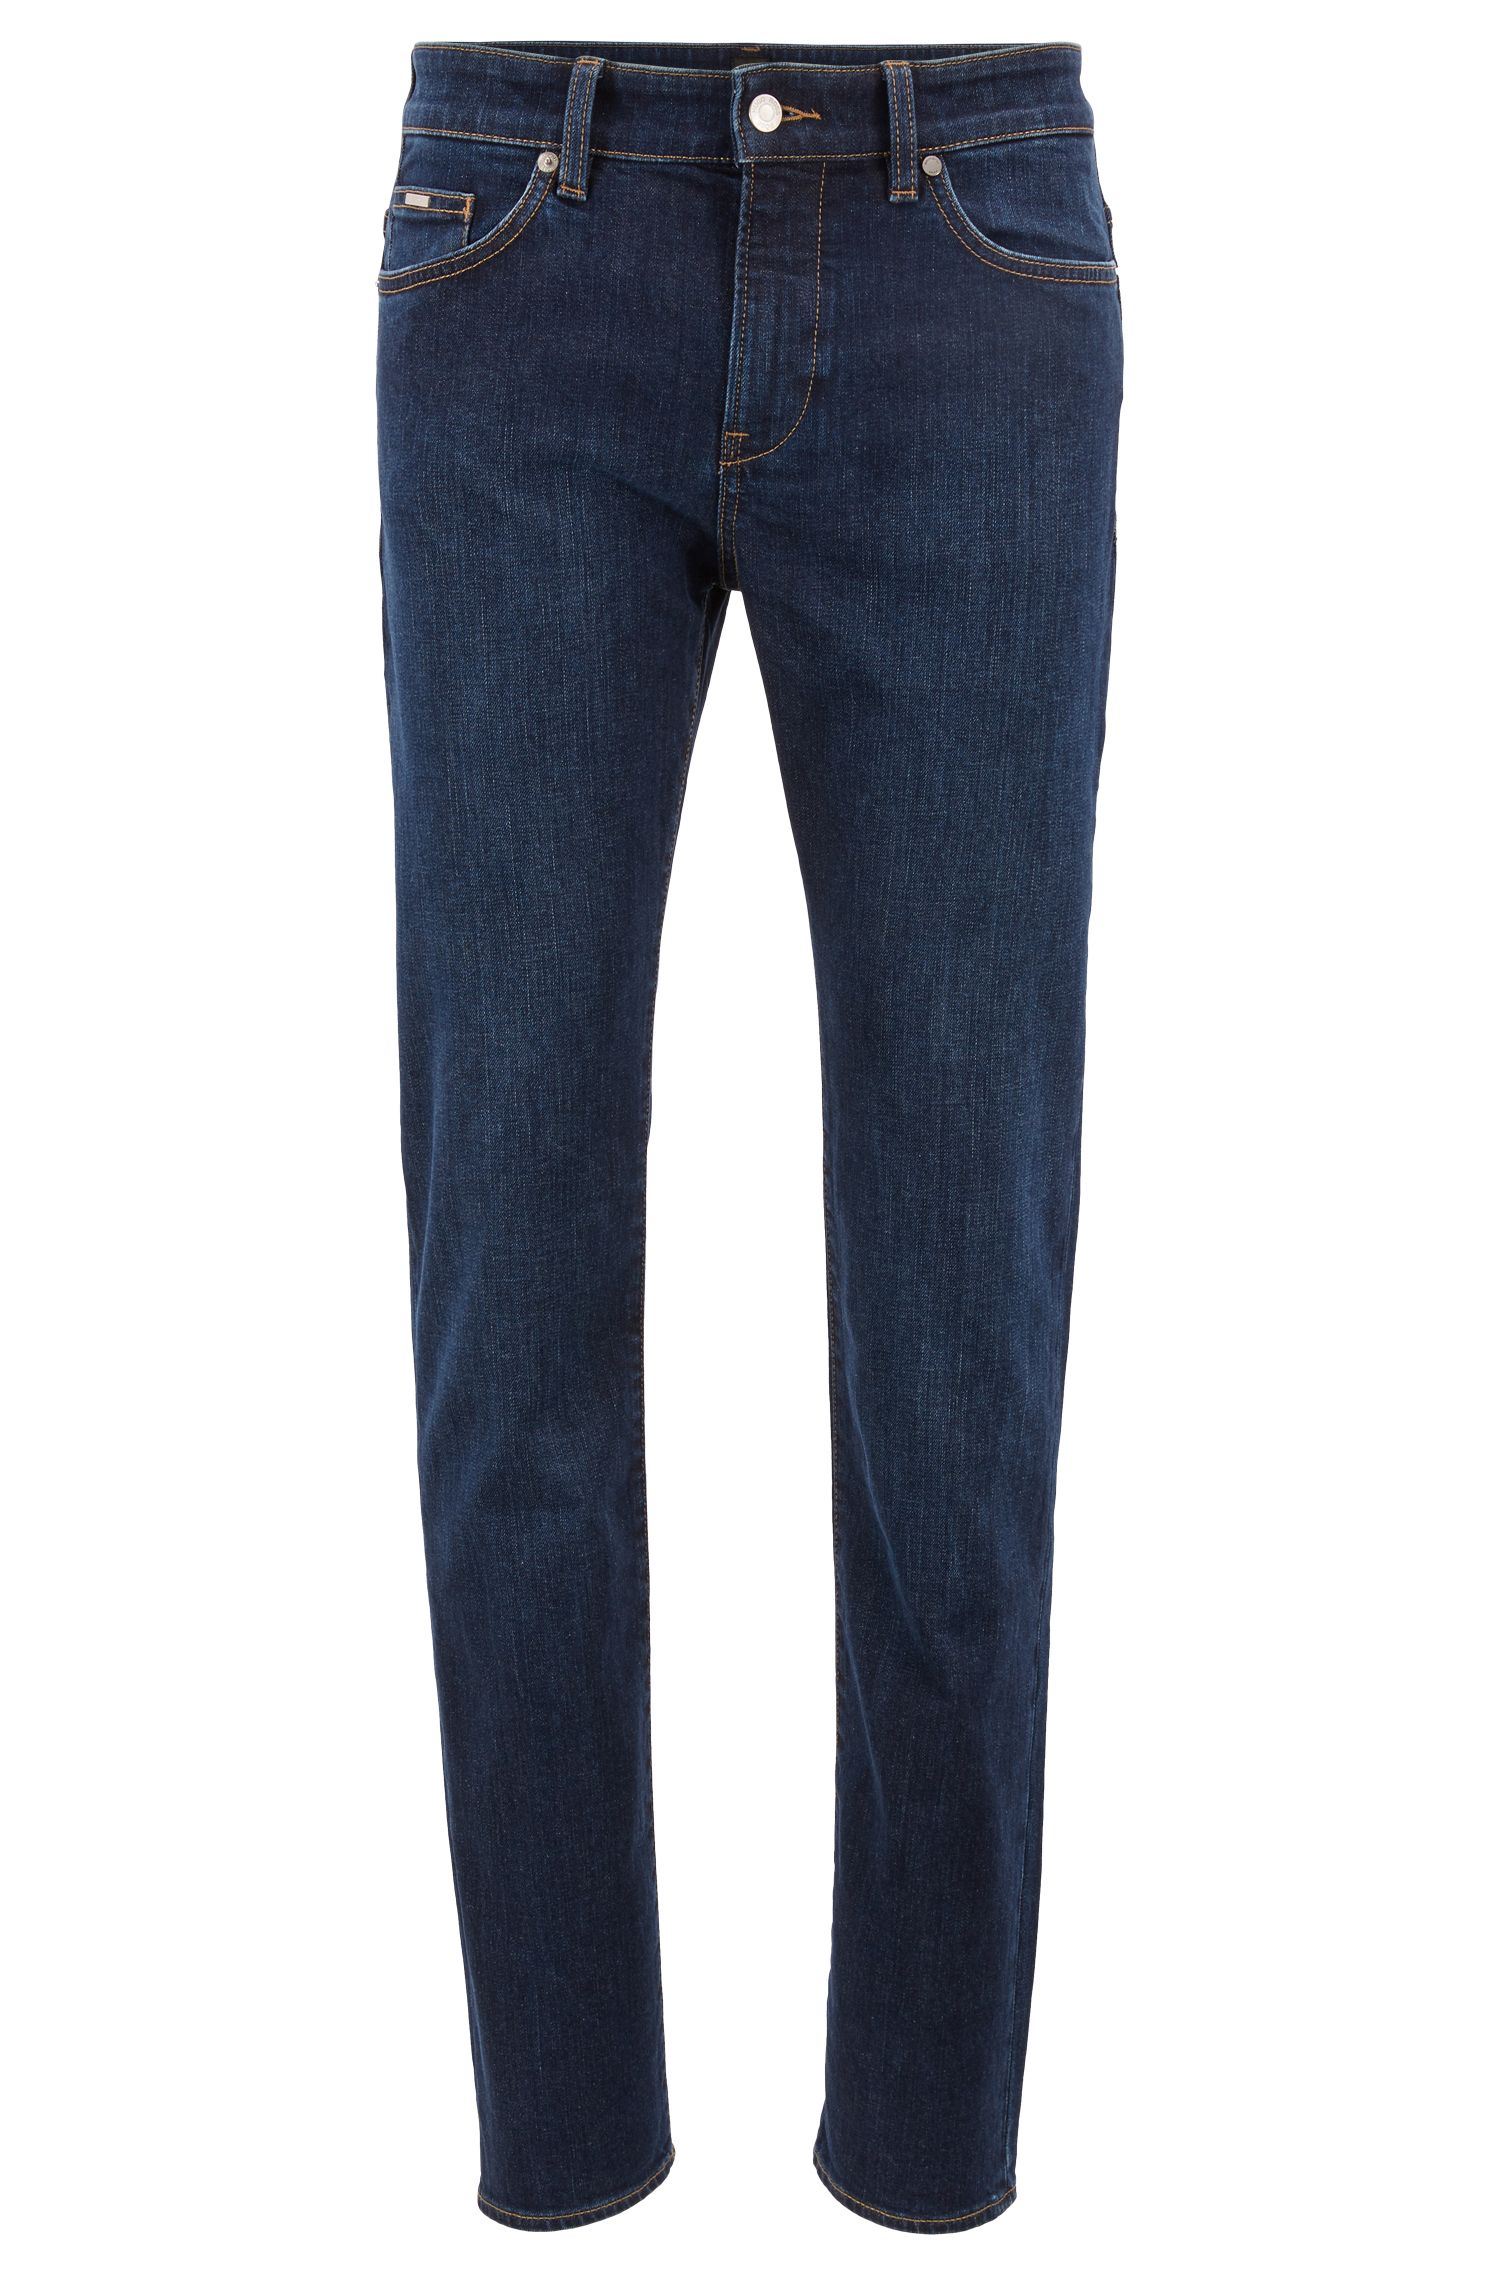 Slim-fit jeans in comfort-stretch indigo denim, Blue